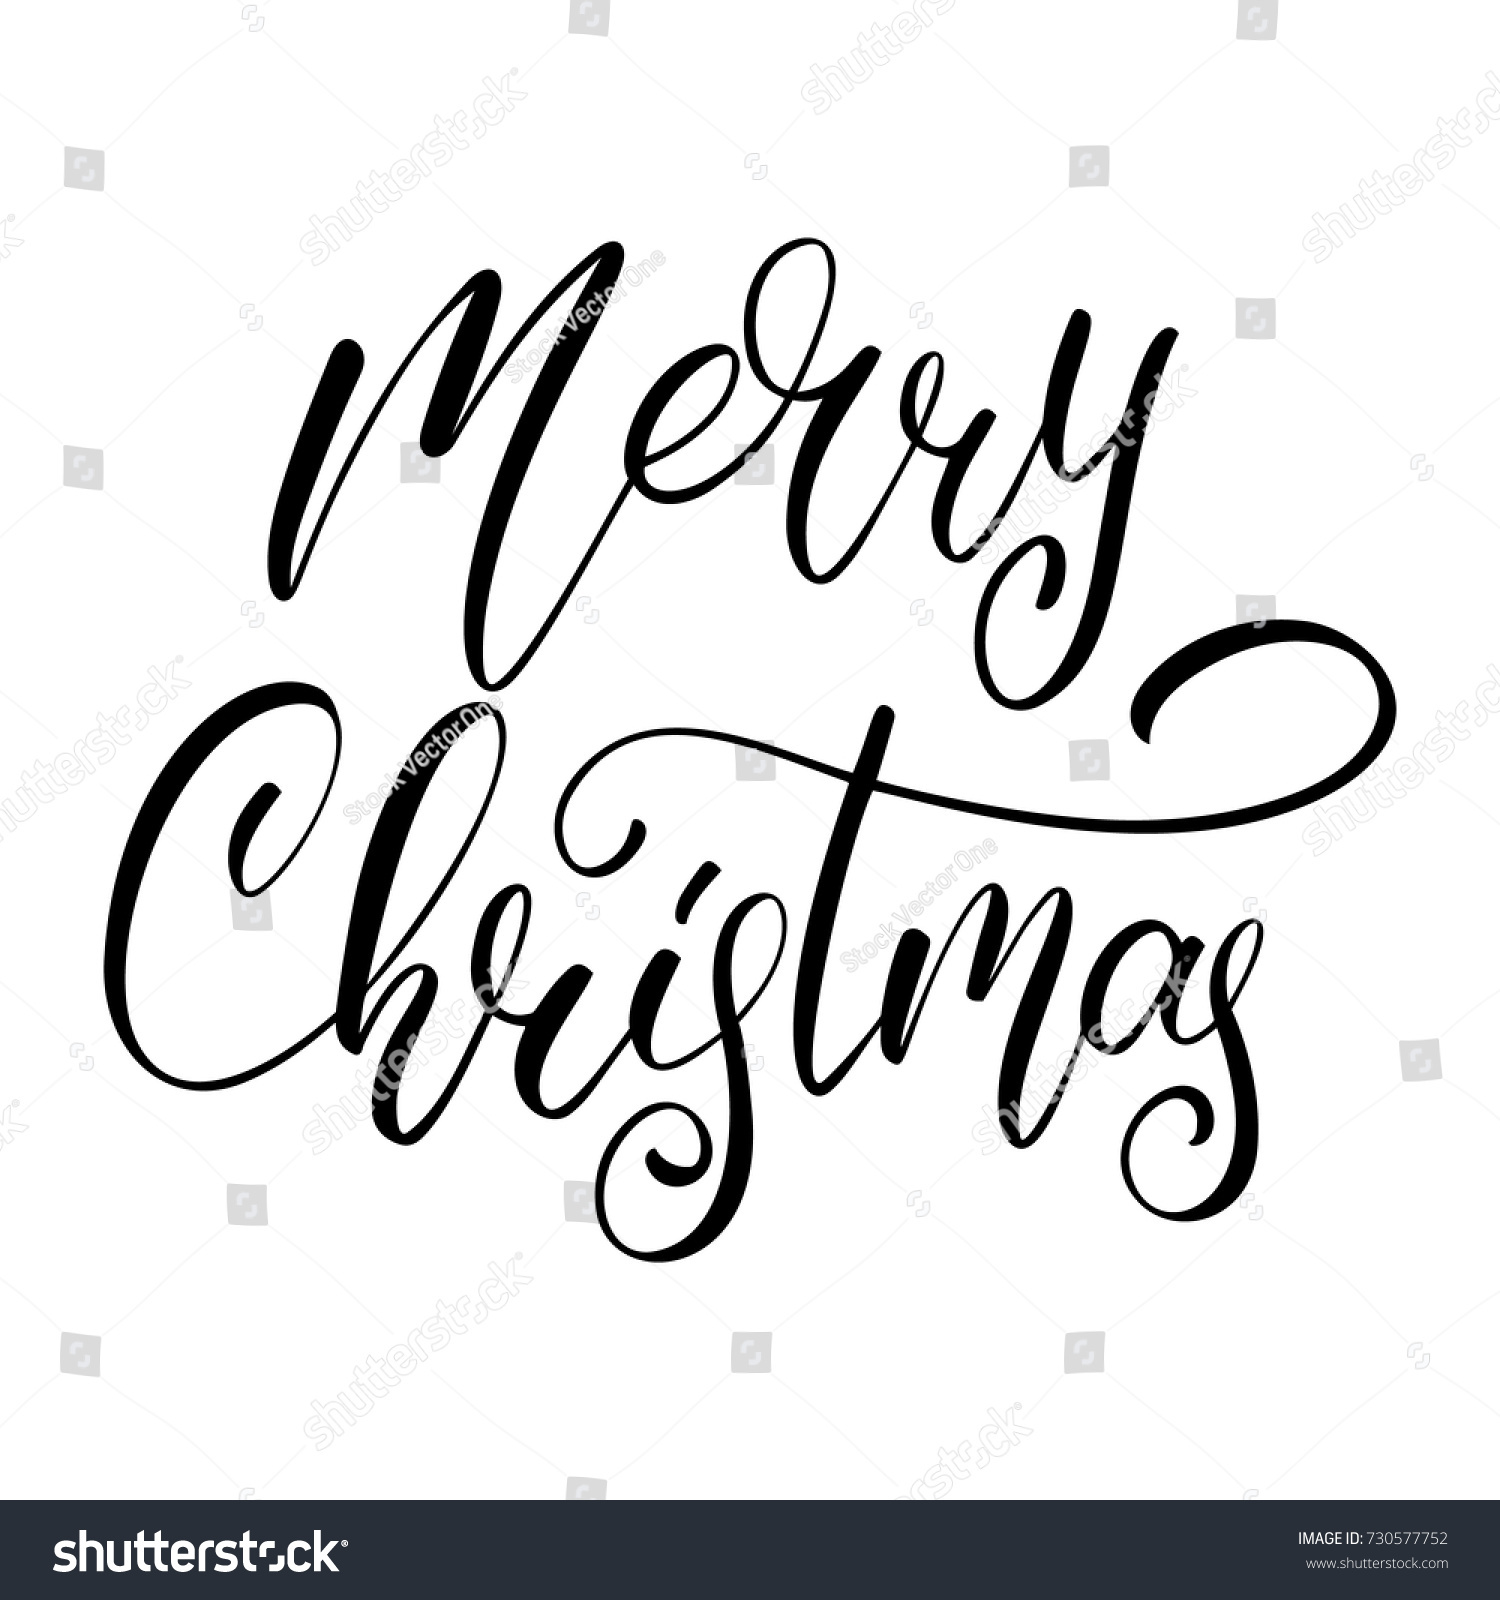 Merry Christmas Vector Calligraphic Lettering Design Stock